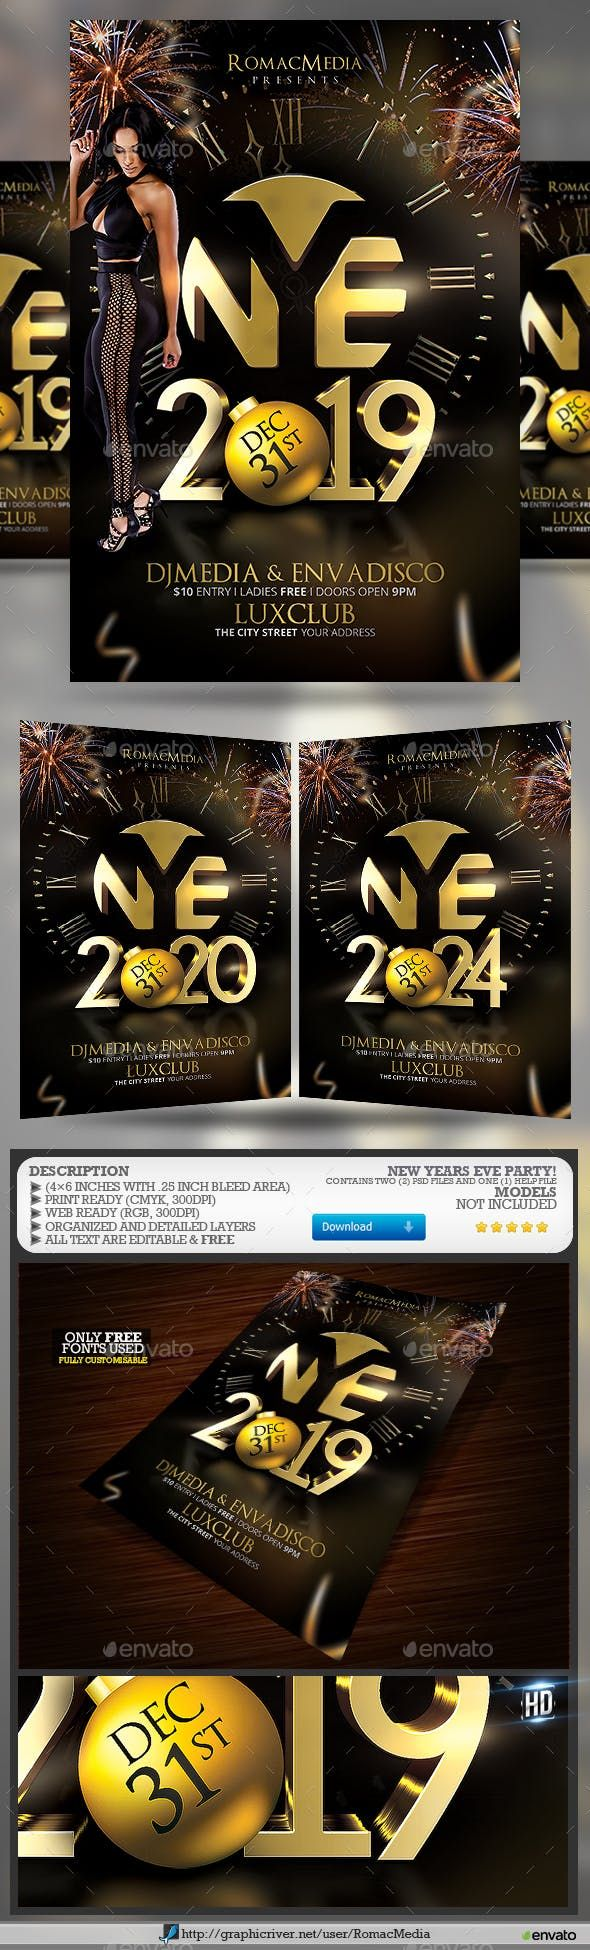 New Years Eve New years eve, Party flyer, New years party